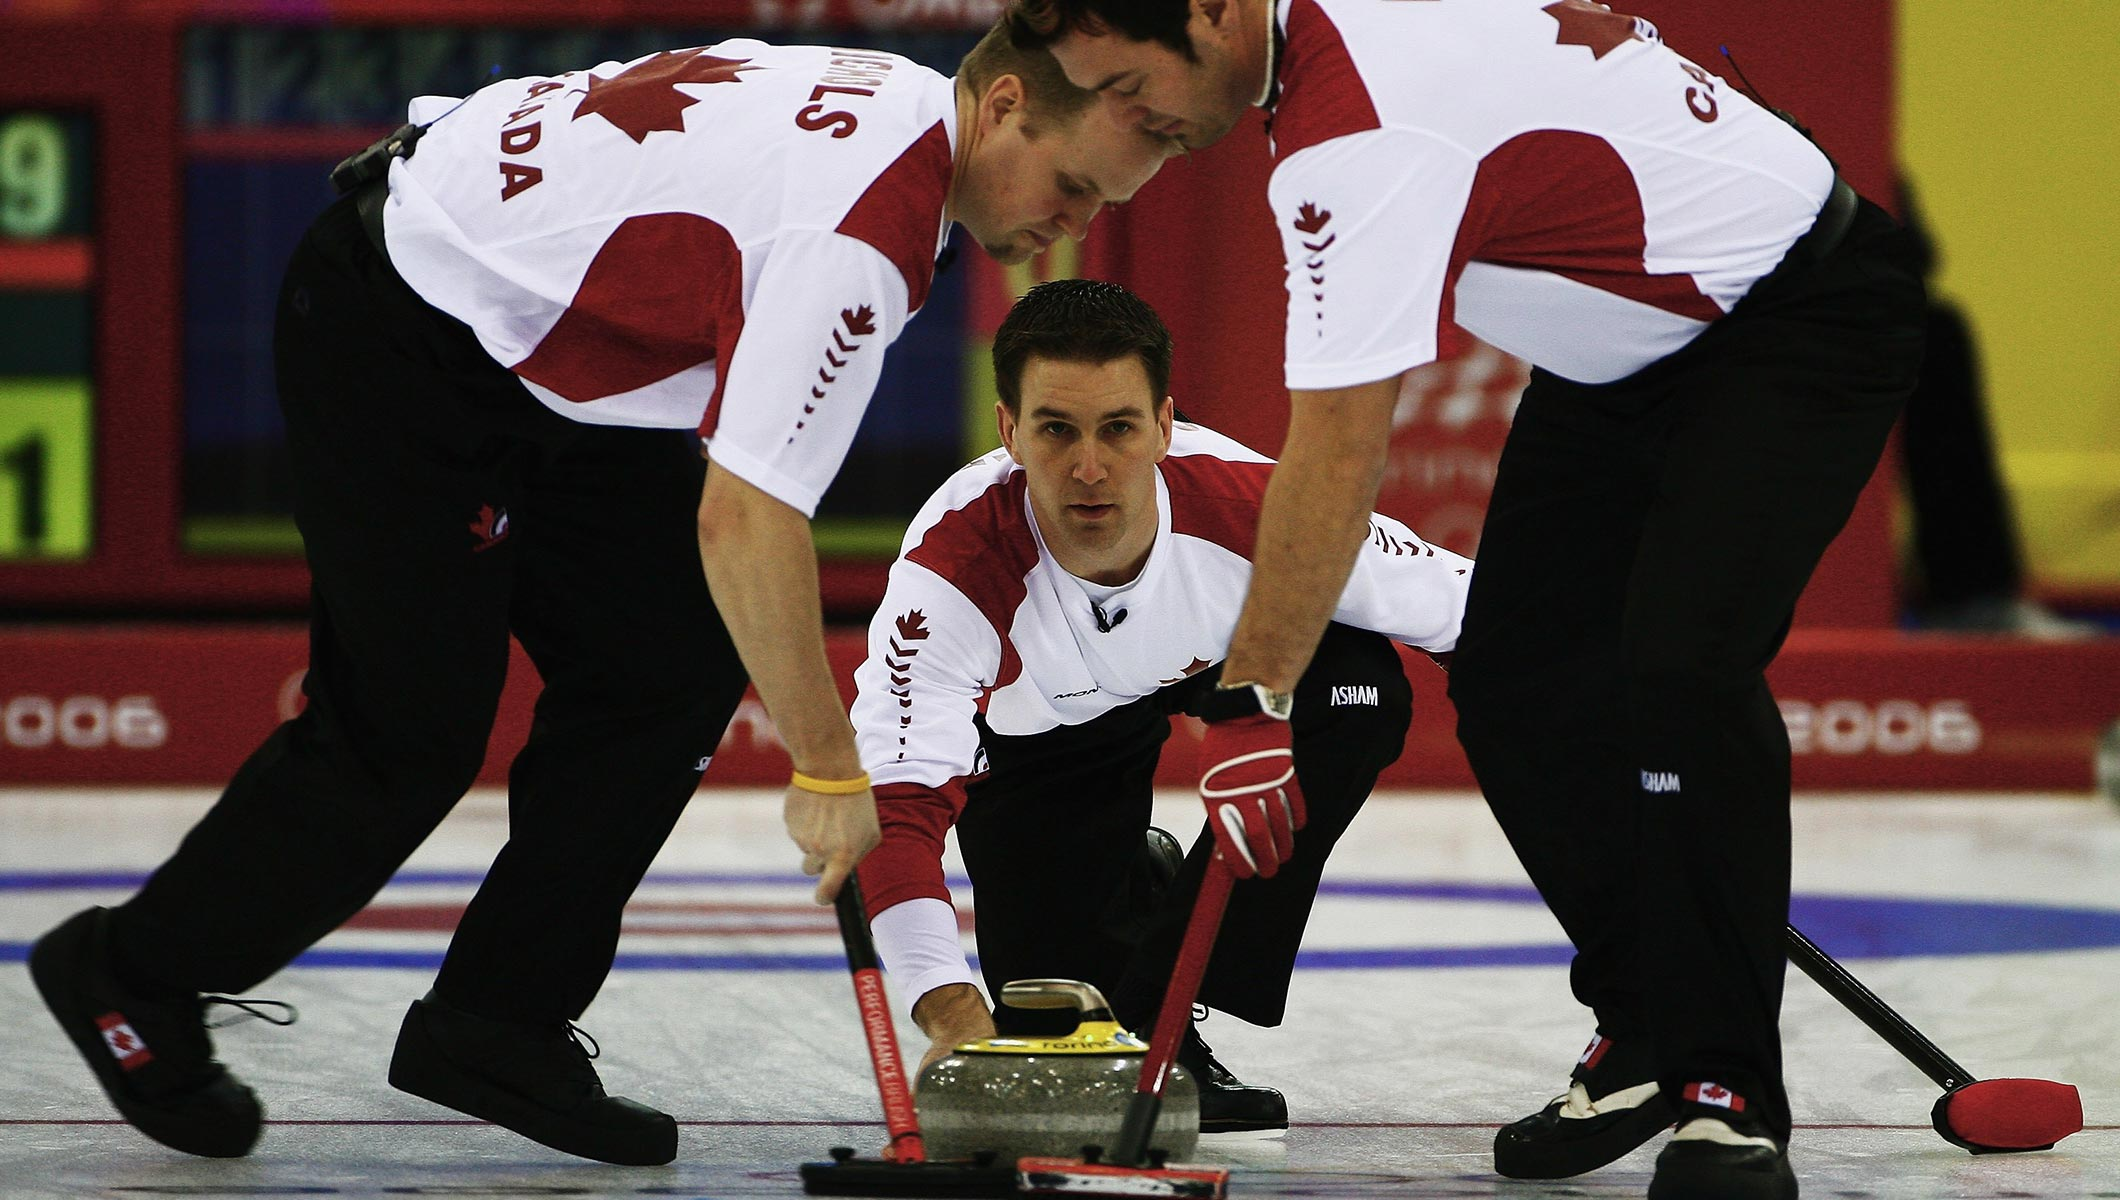 Gushue leads youthful Canada to curling title - Olympic News